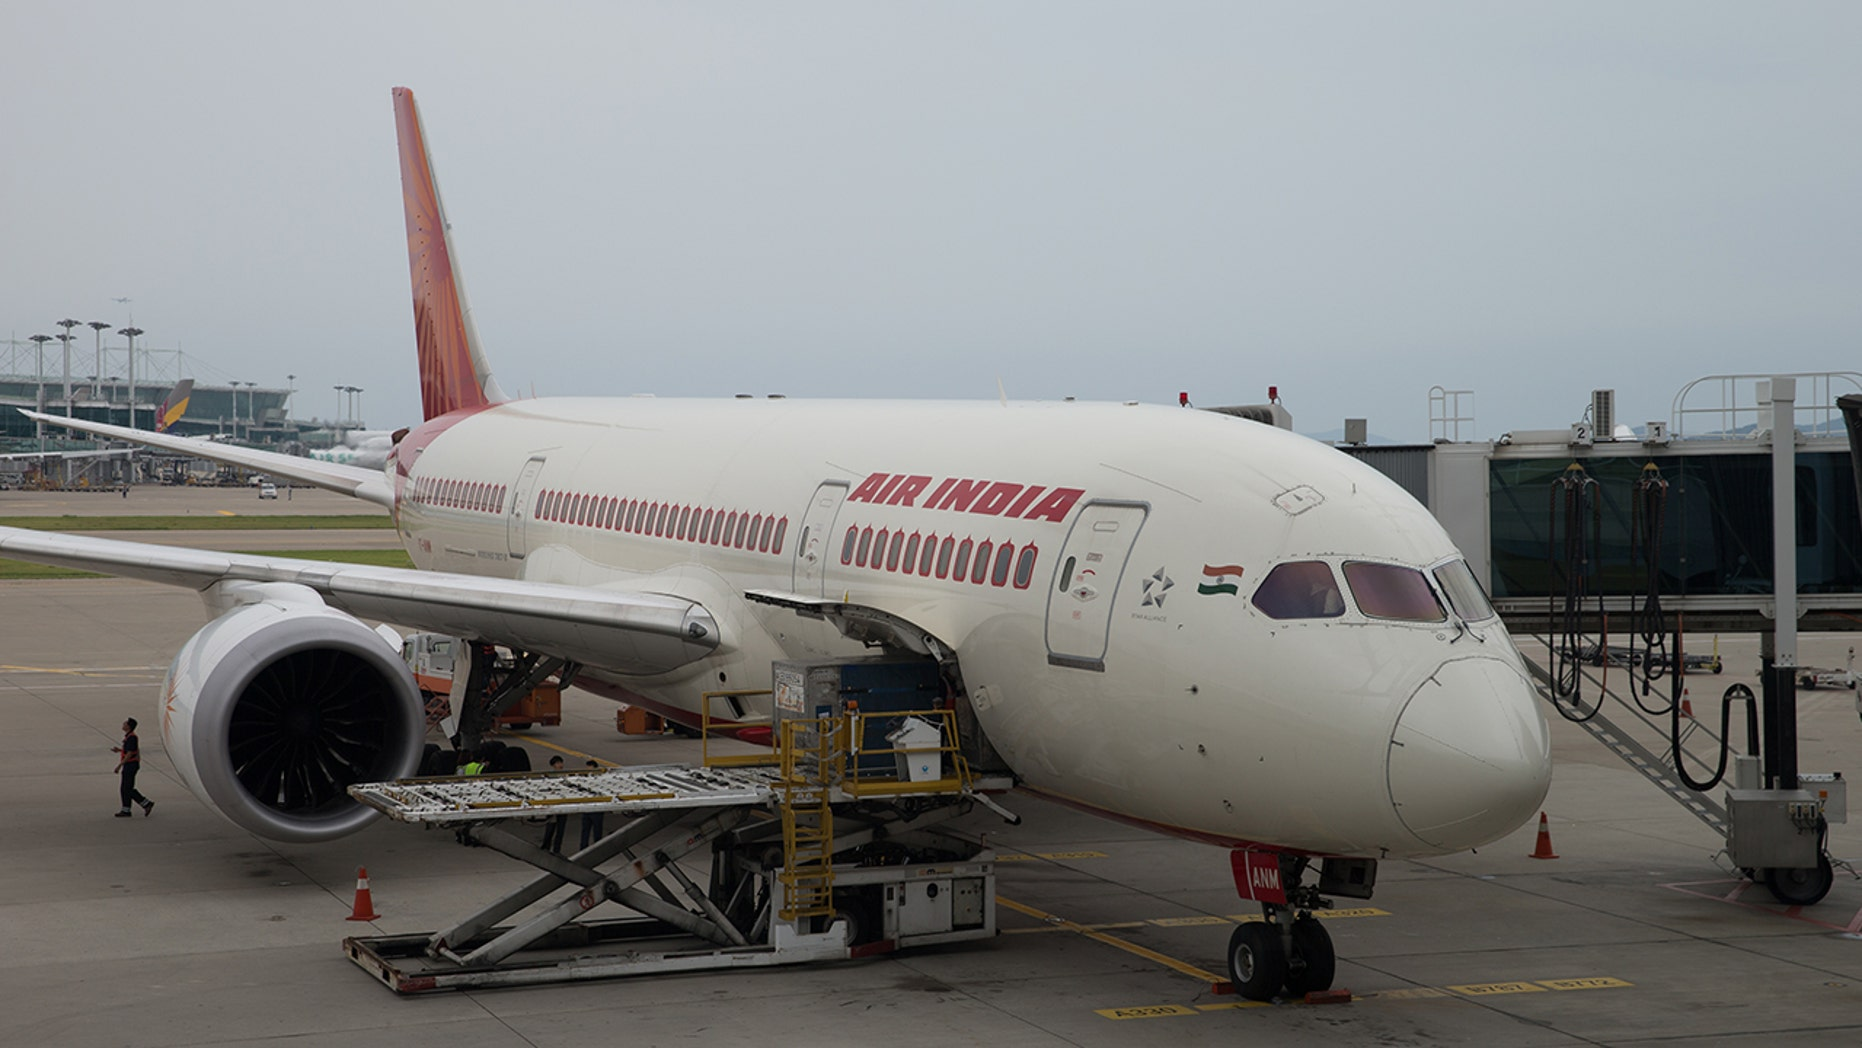 An Air India flight attendant sustained multiple injuries after falling out of an airplane as she prepared for boarding.